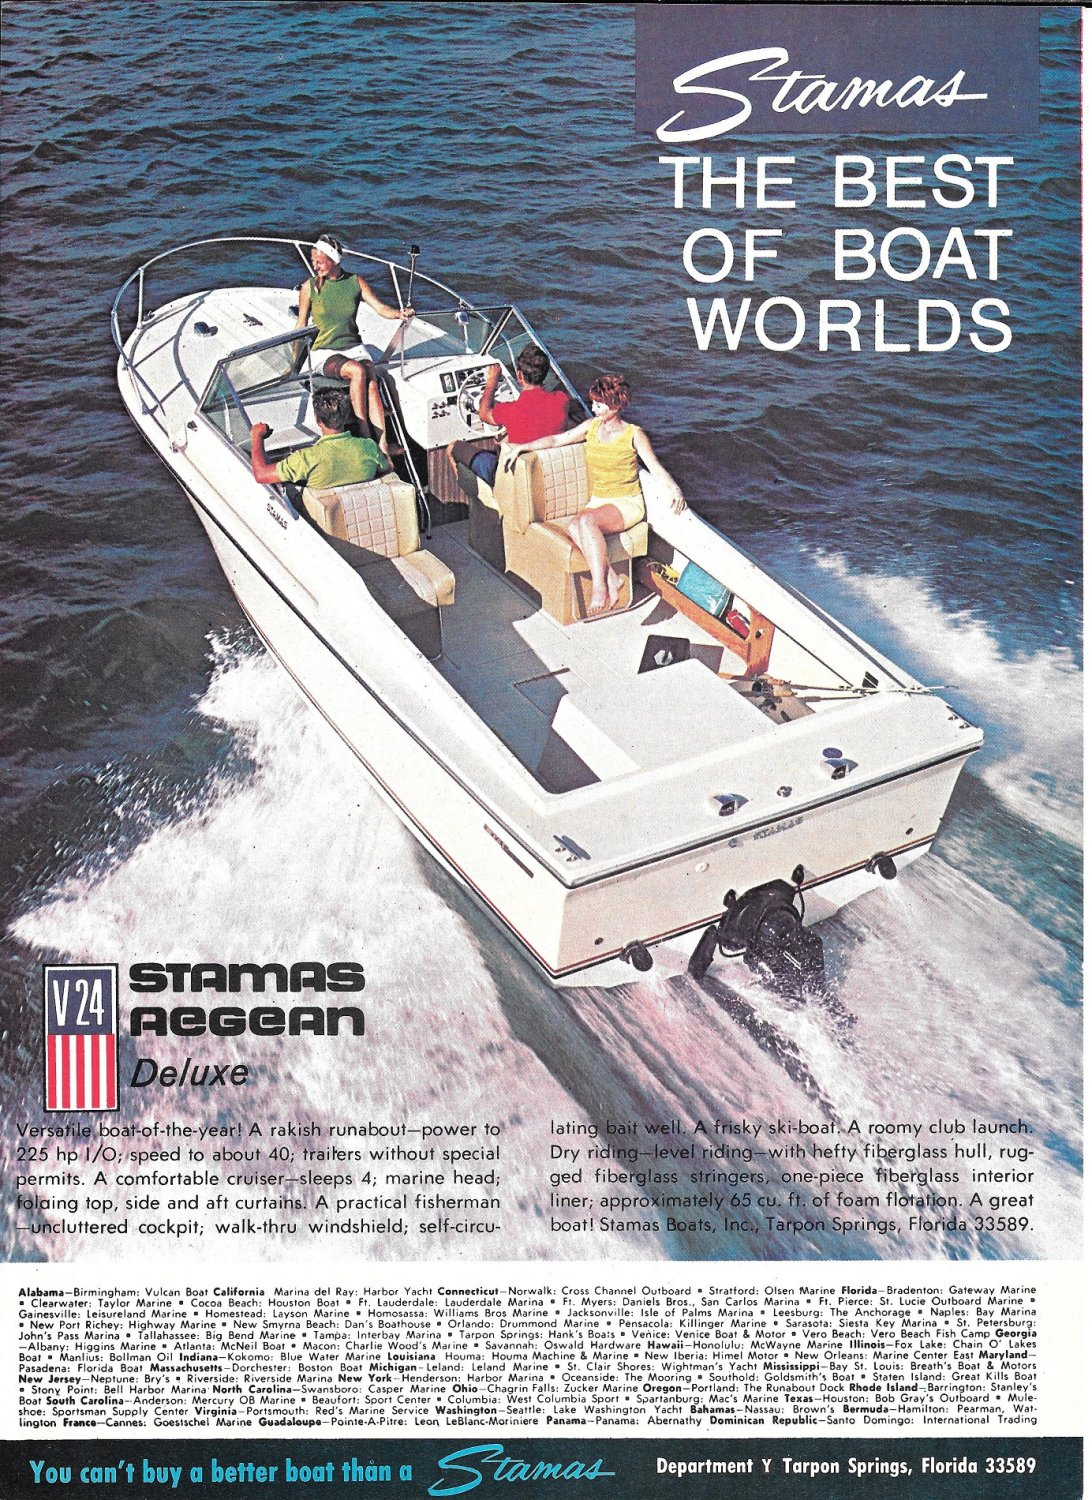 Old Stamas V24 Aegean Deluxe Boat Color Ad- Nice Photo